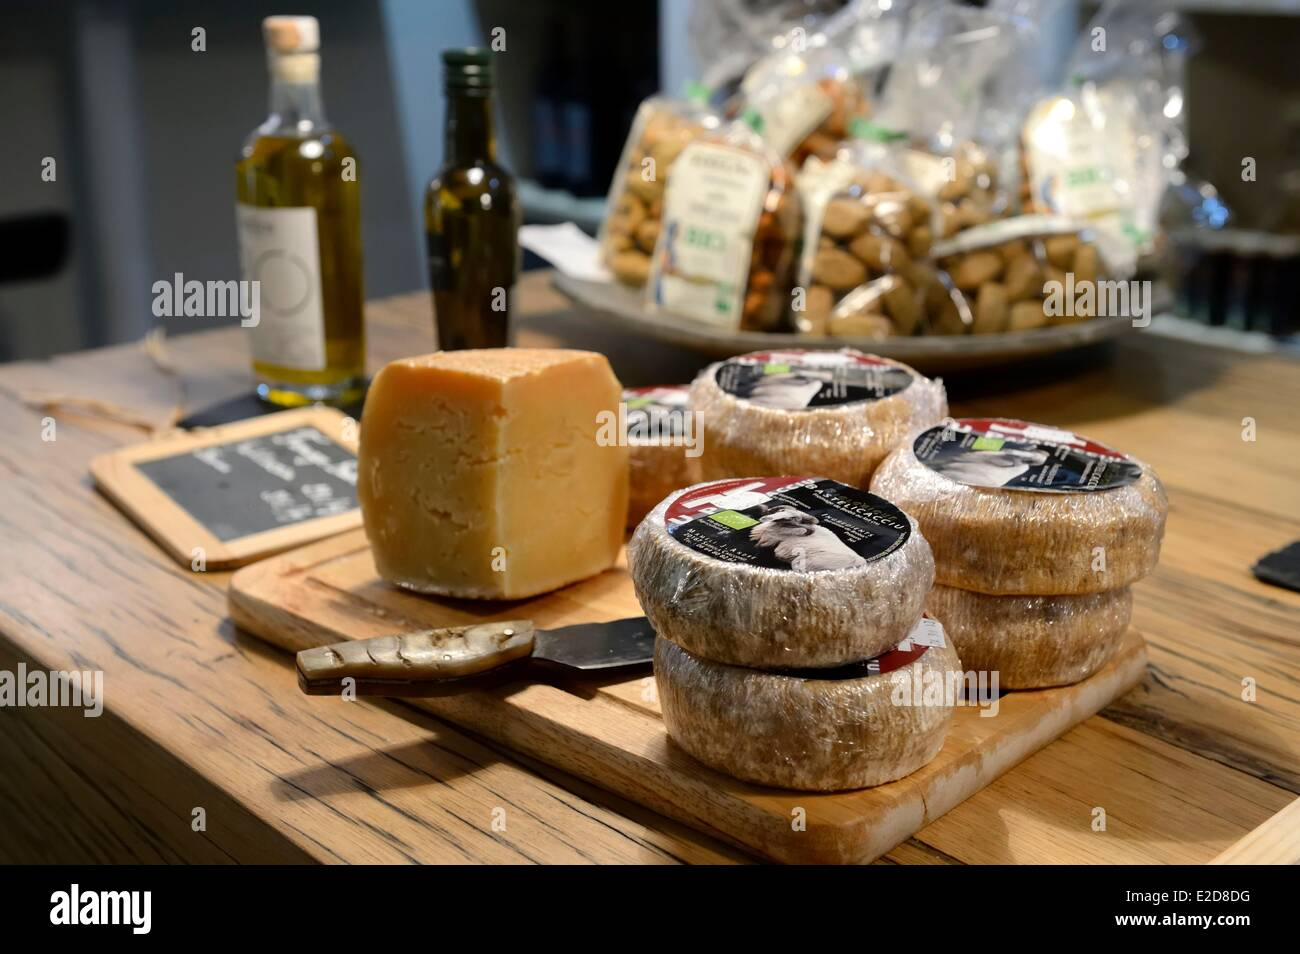 France Corse du Sud Ajaccio the organic concept store Kinov sale of cheeses and other Corsican products - Stock Image